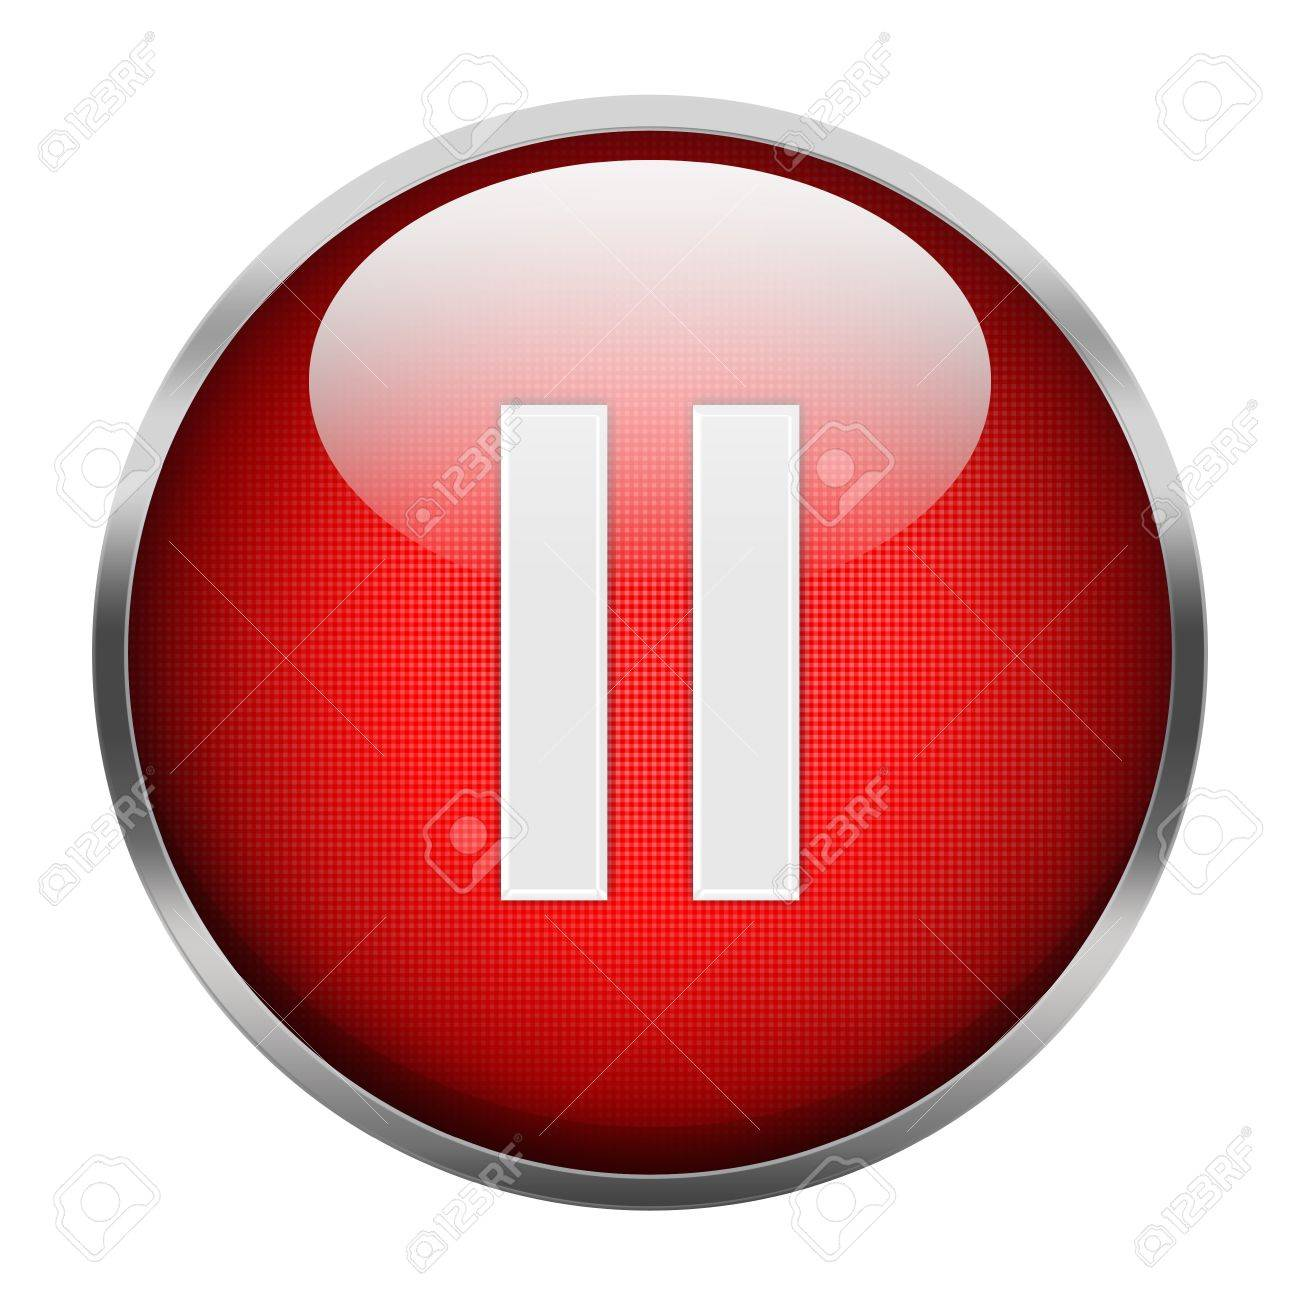 pause button isolated stock photo picture and royalty free image